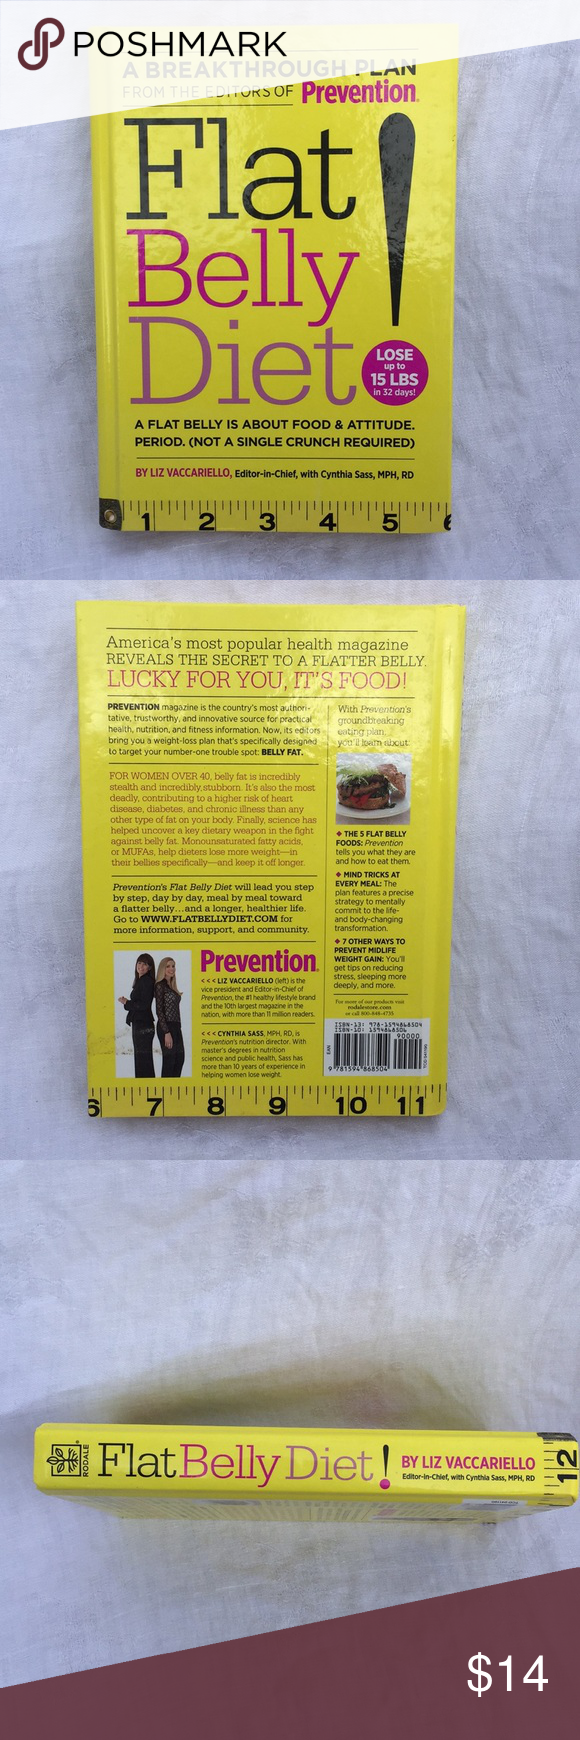 Flat Belly Diet Coffee Table Book Flat Belly Diet Coffee Diet Flat Belly